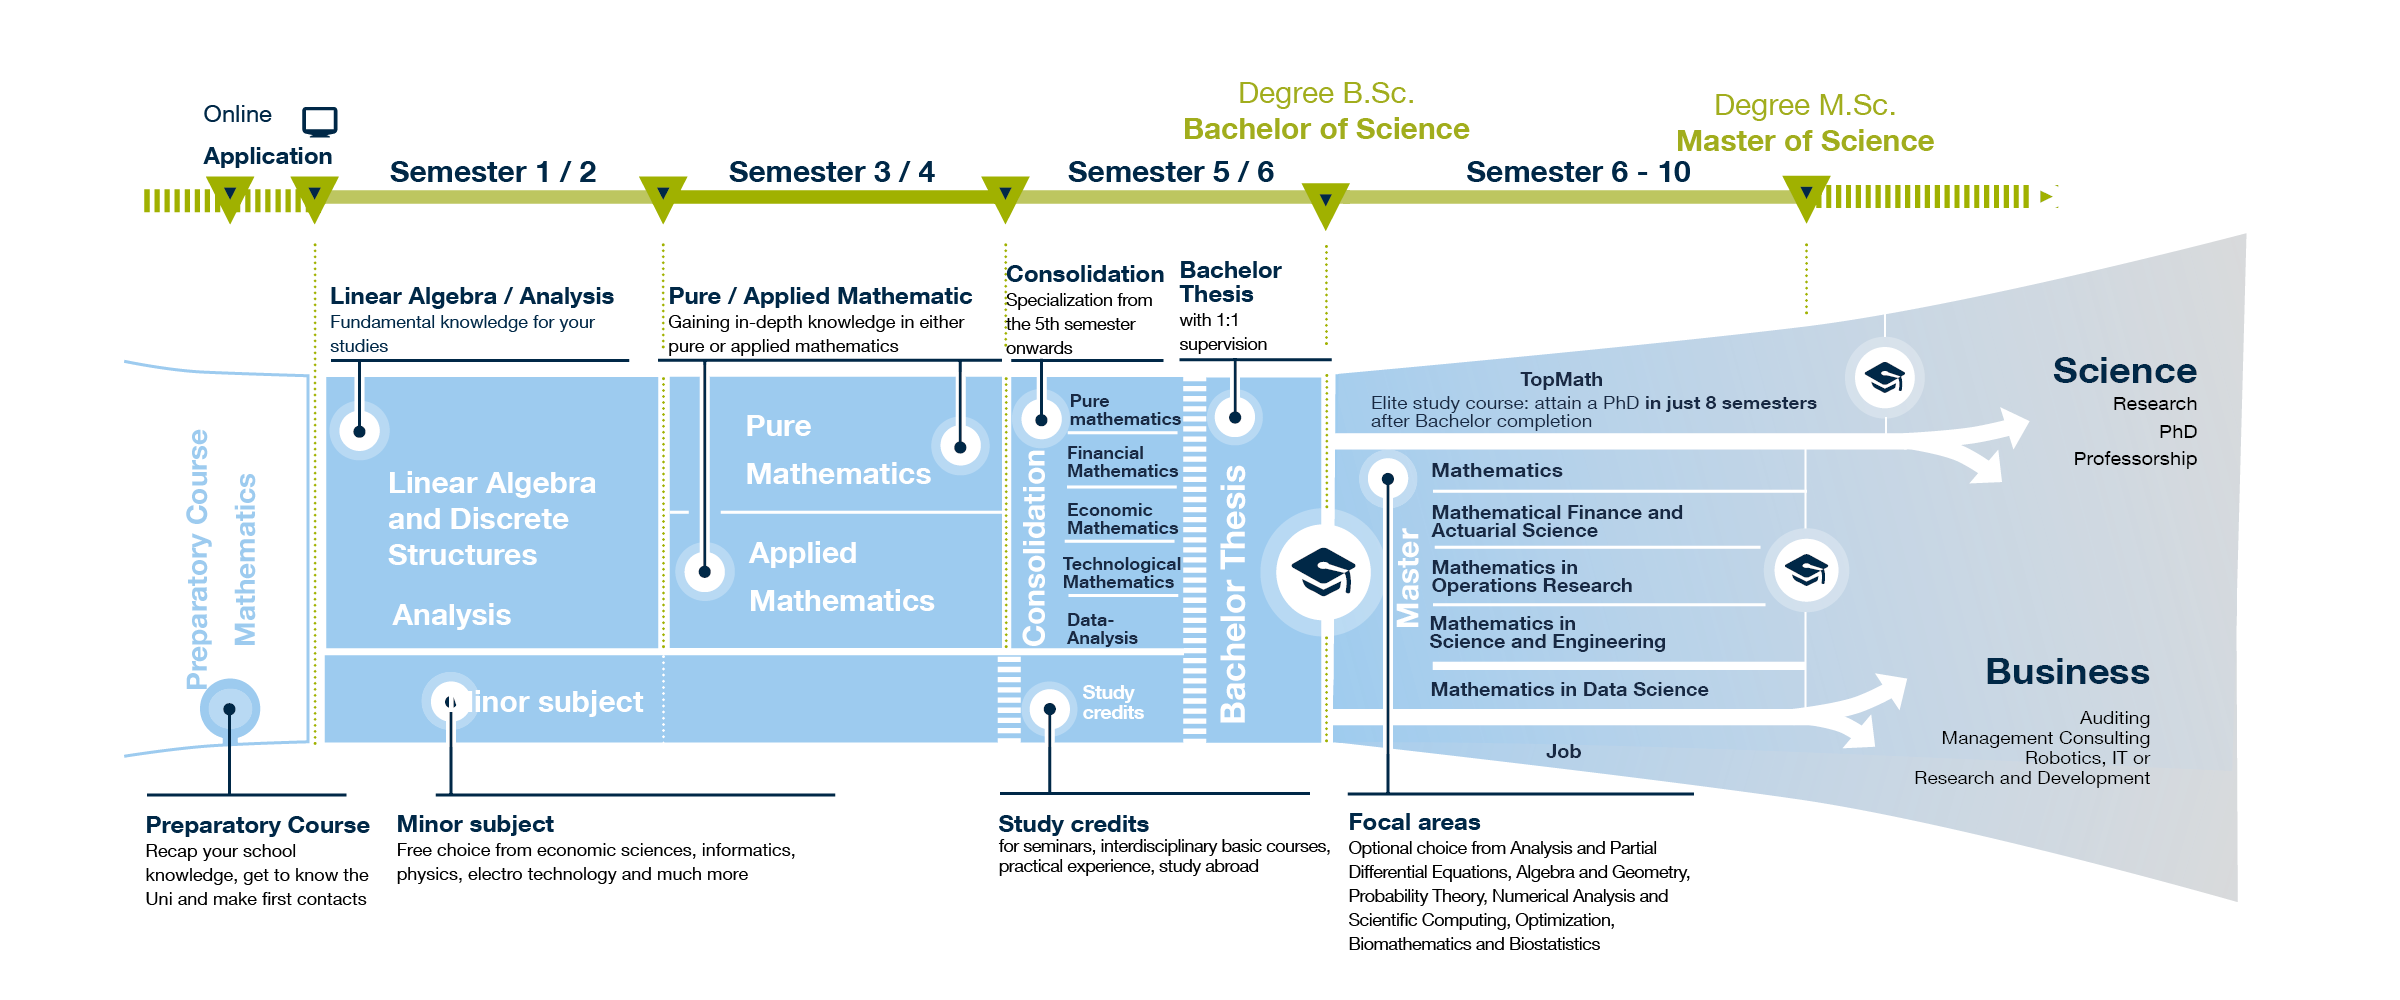 Graphic: Course structure and mathematics courses at the TUM